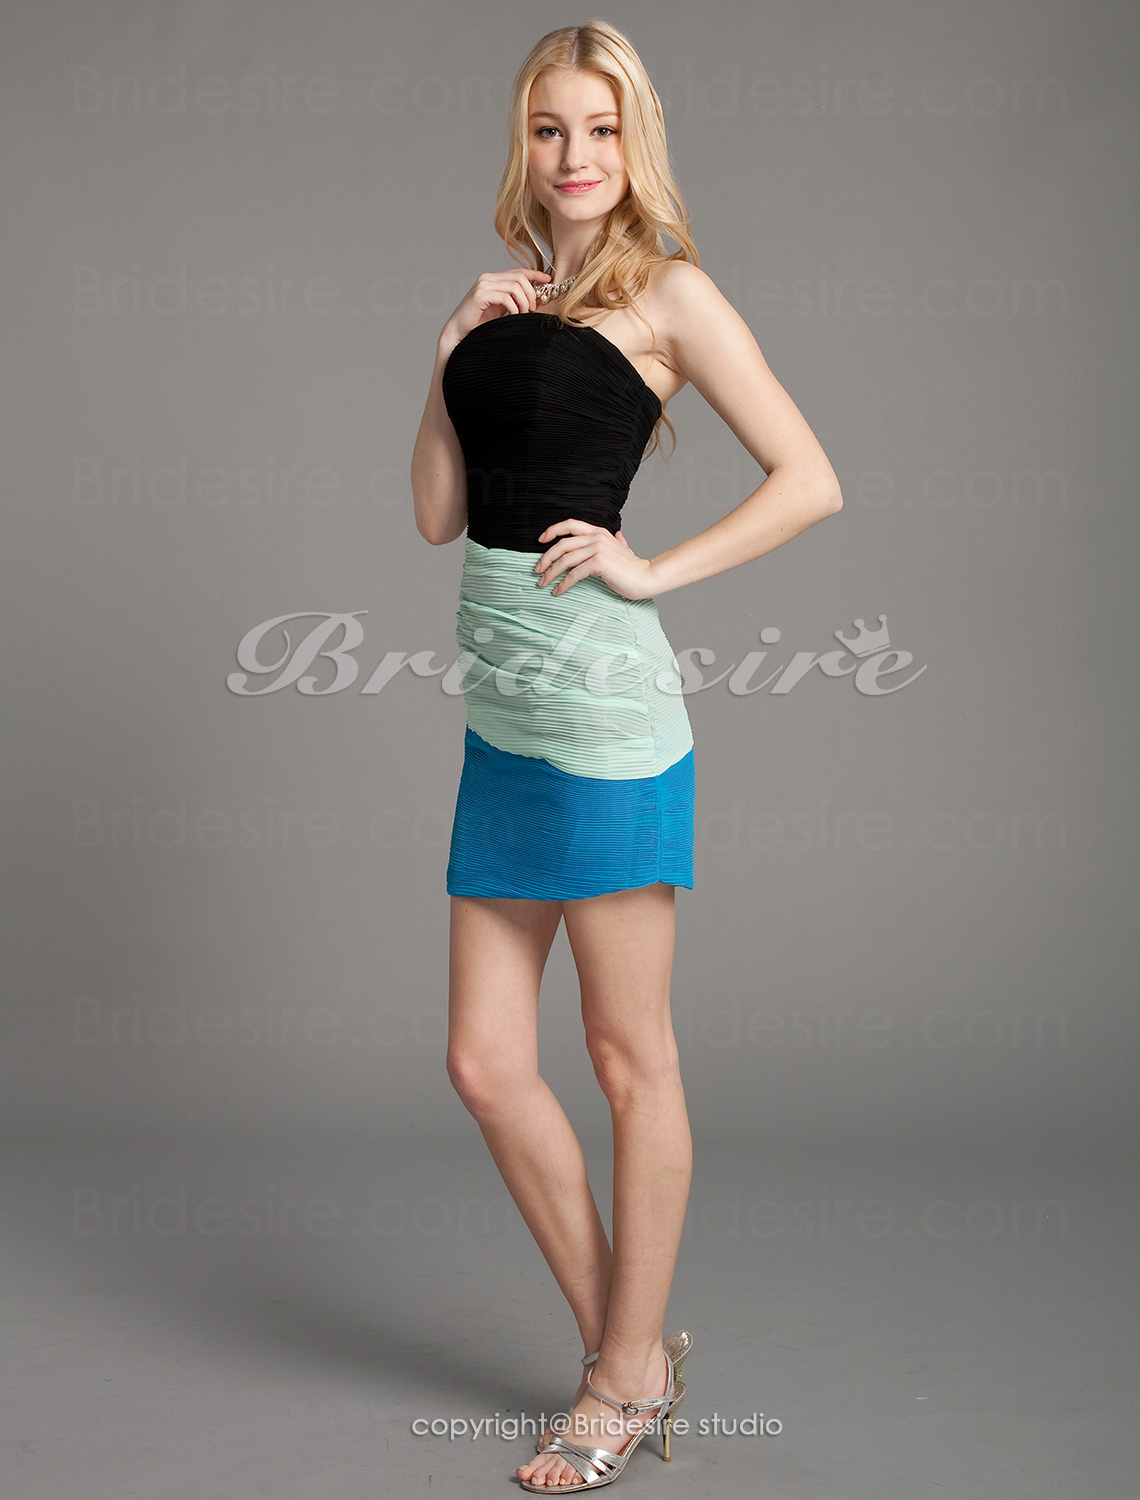 Sheath/Column Chiffon Short/Mini Strapless Cocktail Dress